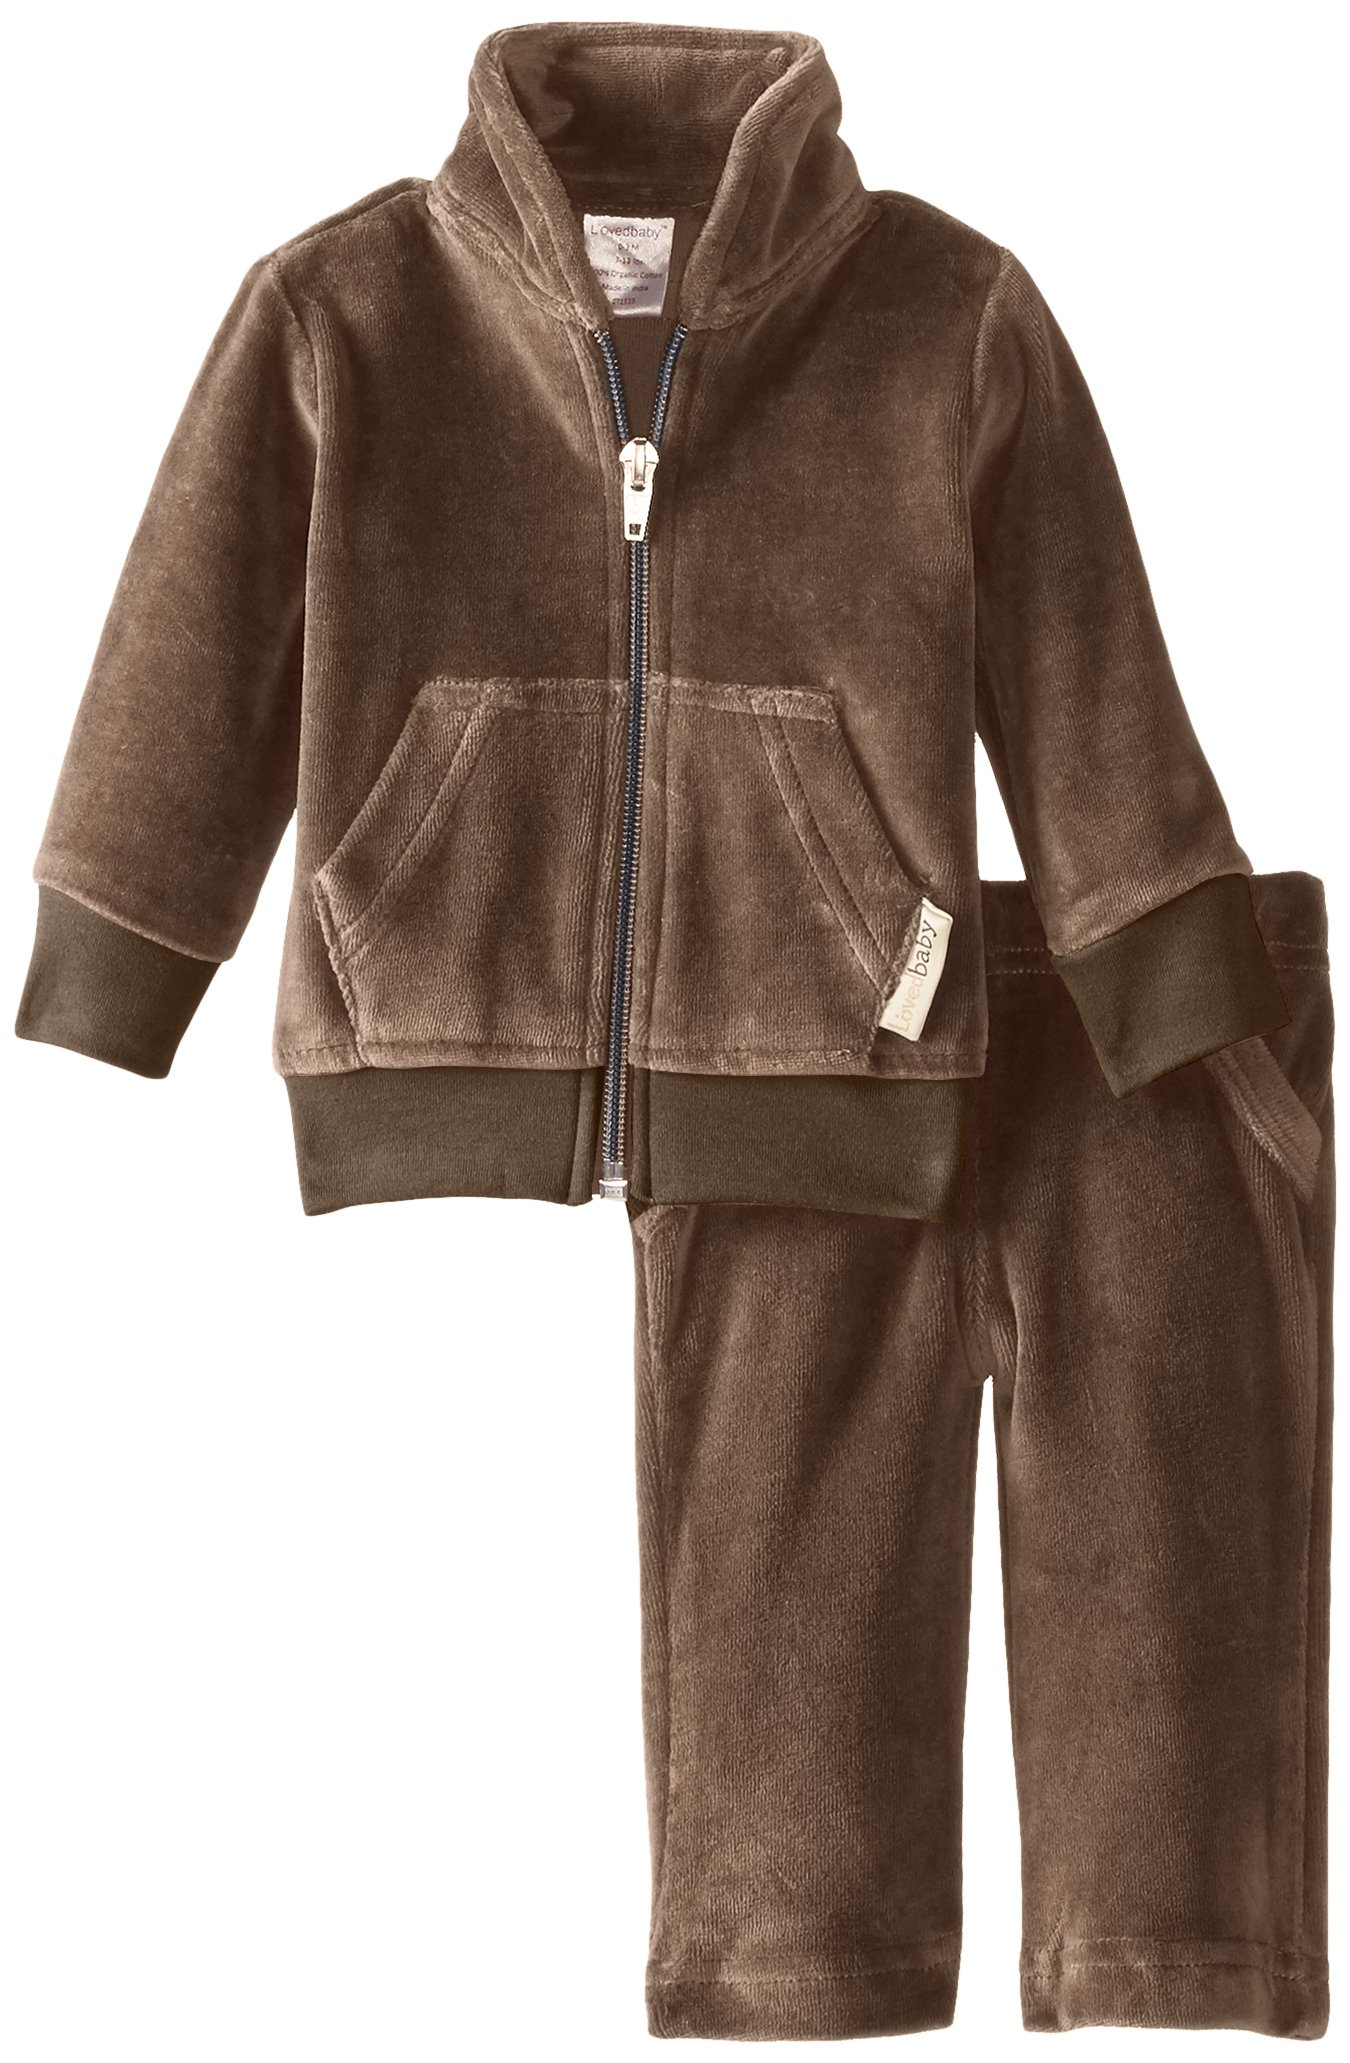 L'ovedbaby Unisex-Baby Newborn Organic Cotton Velour Track Suit, Bark, 18-24 Months by L'ovedbaby